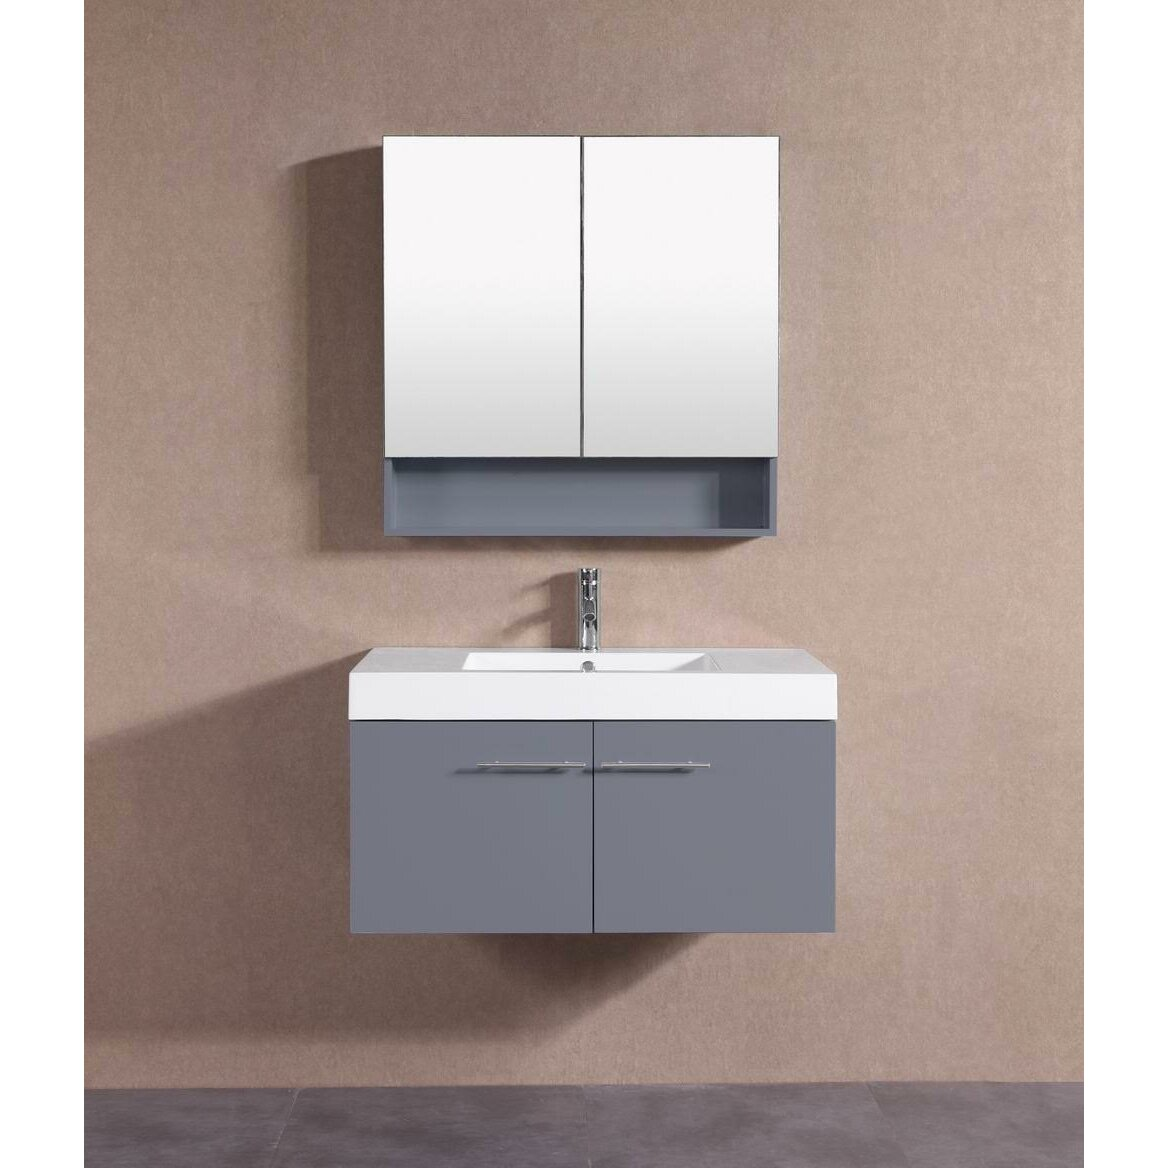 Belvederebath 36 single modern bathroom vanity set wayfair for Bath and vanity set